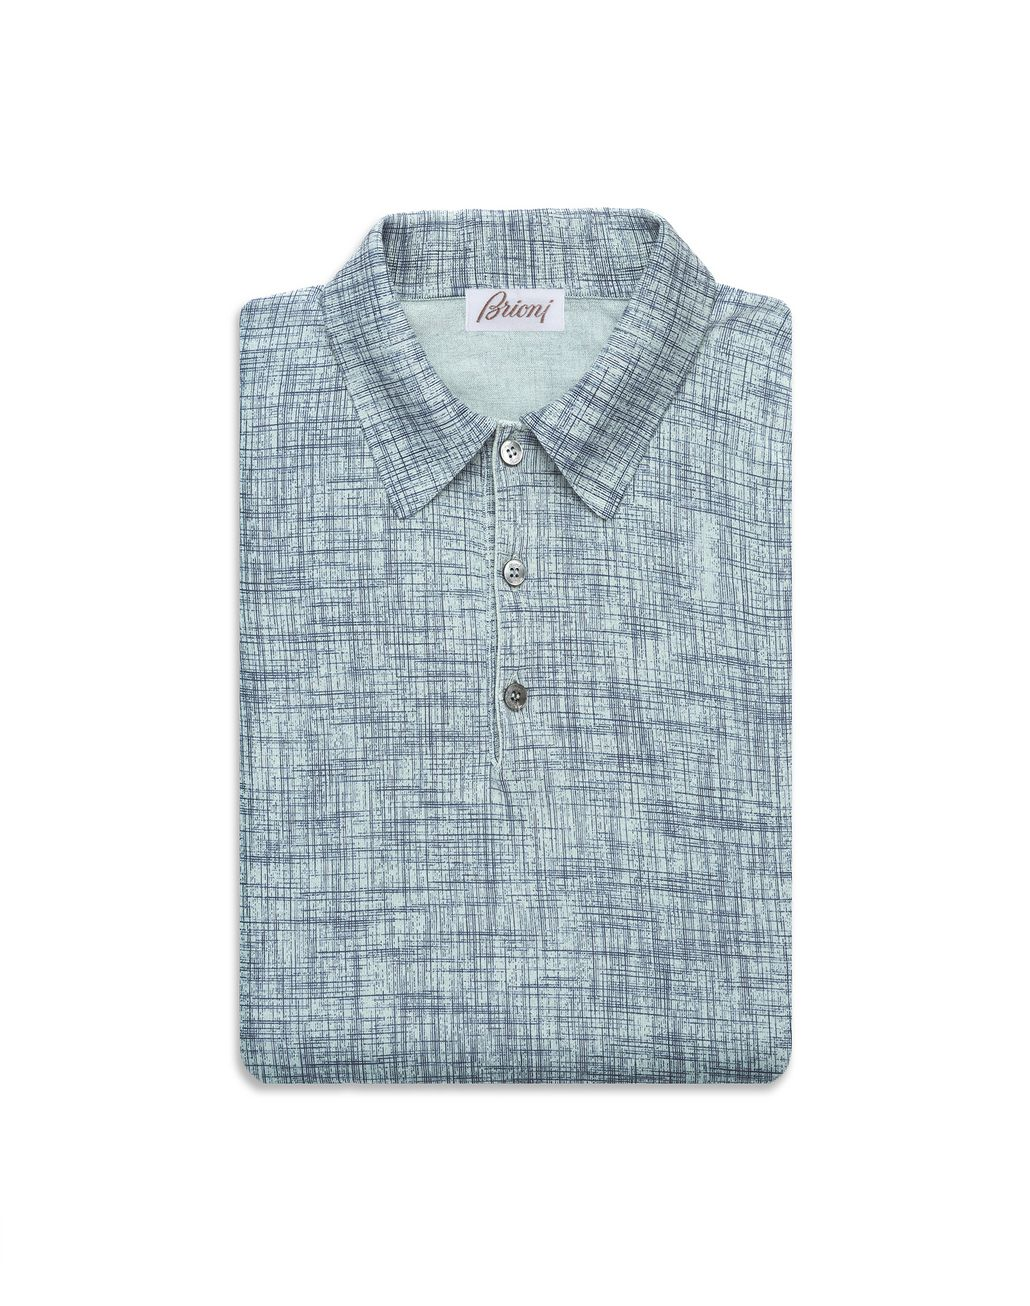 BRIONI White Tone on Tone Rhombus Design Formal Shirt   T-Shirts & Polos Man e